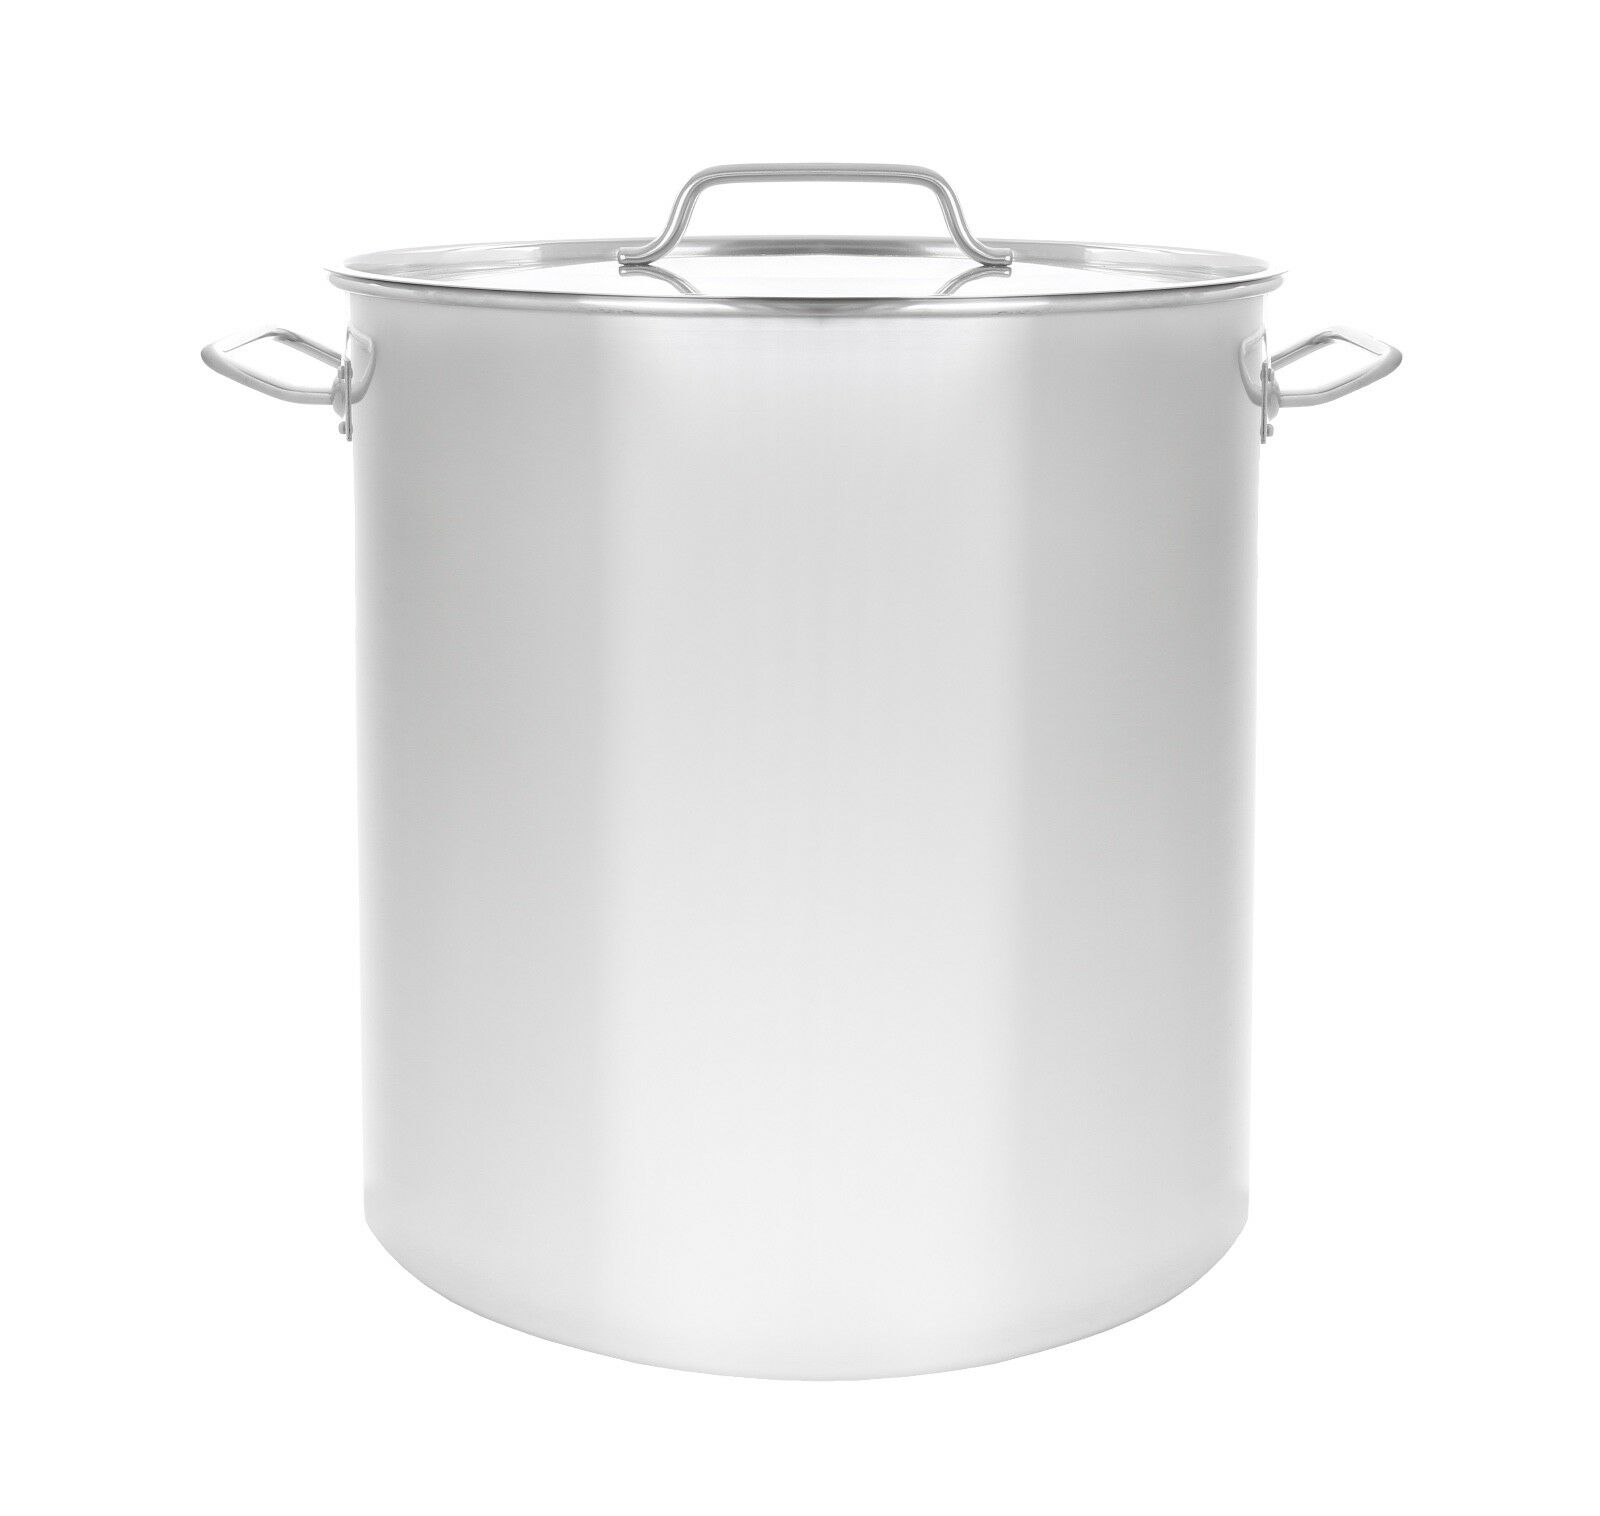 NEW Polished Stainless Steel Stock Pot Brewing Kettle Large